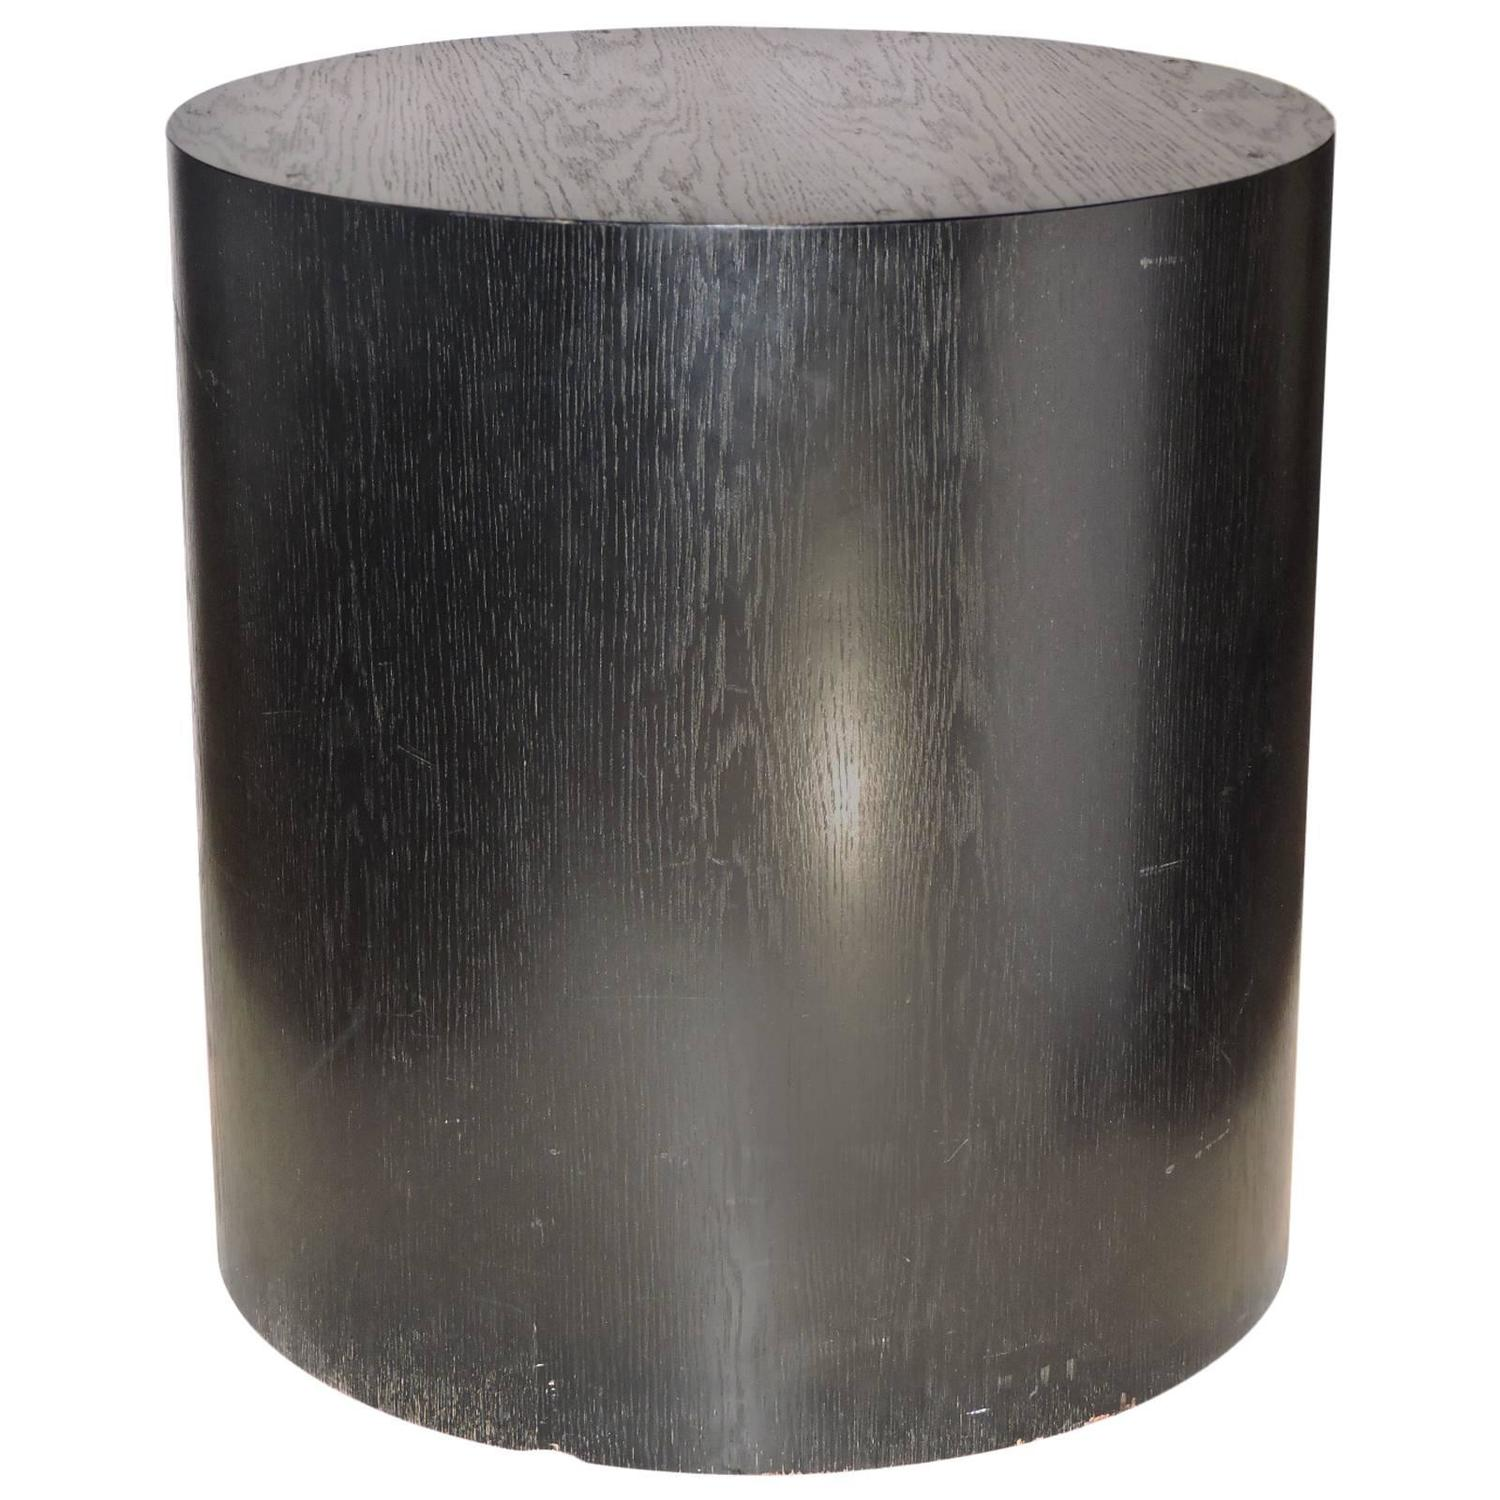 Large ebonized wood cylinder pedestal table at stdibs